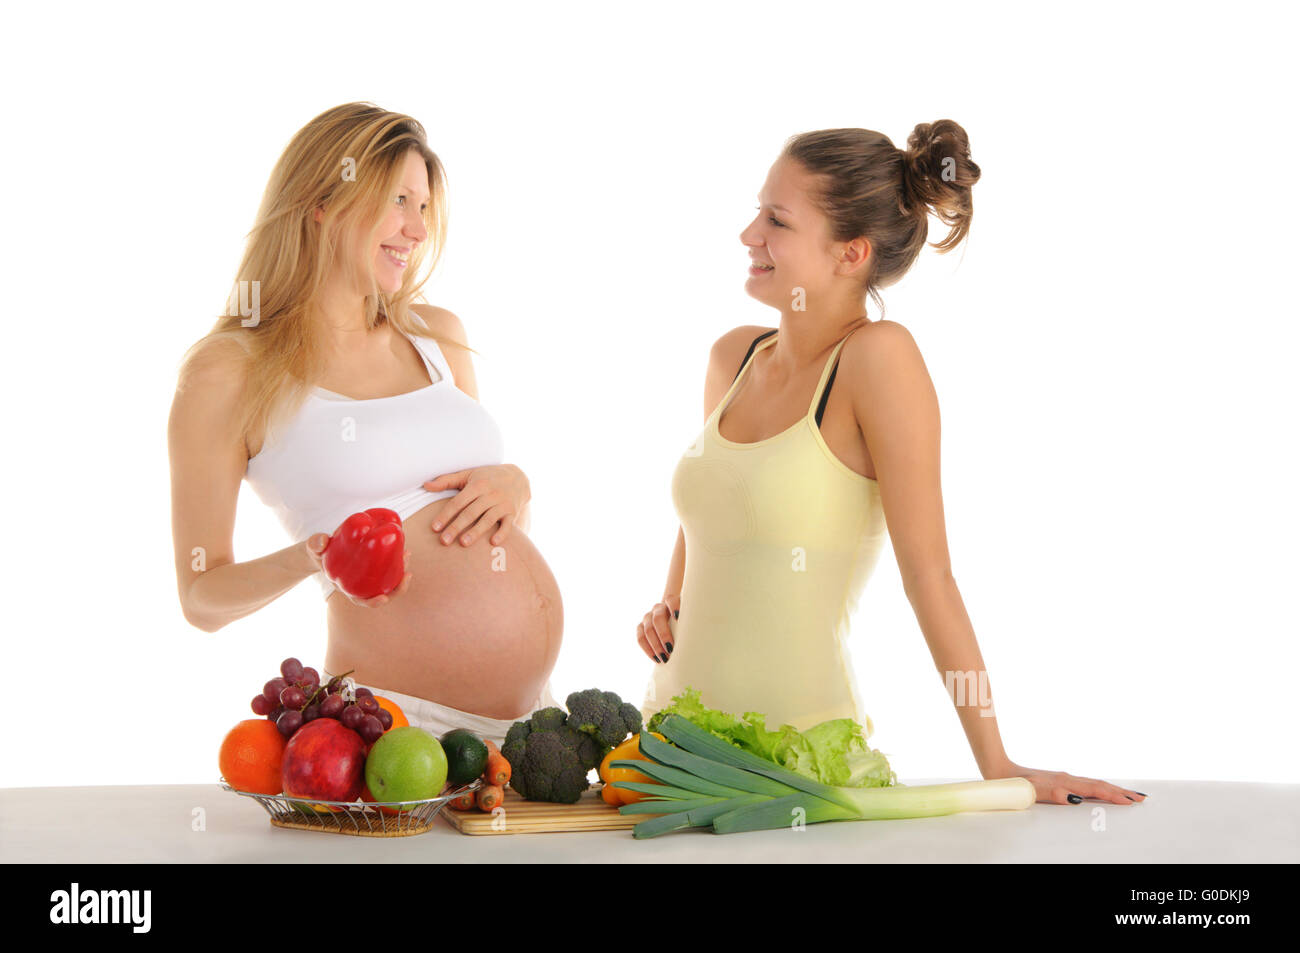 Two gay girlfriends with fruits and vegetables - Stock Image